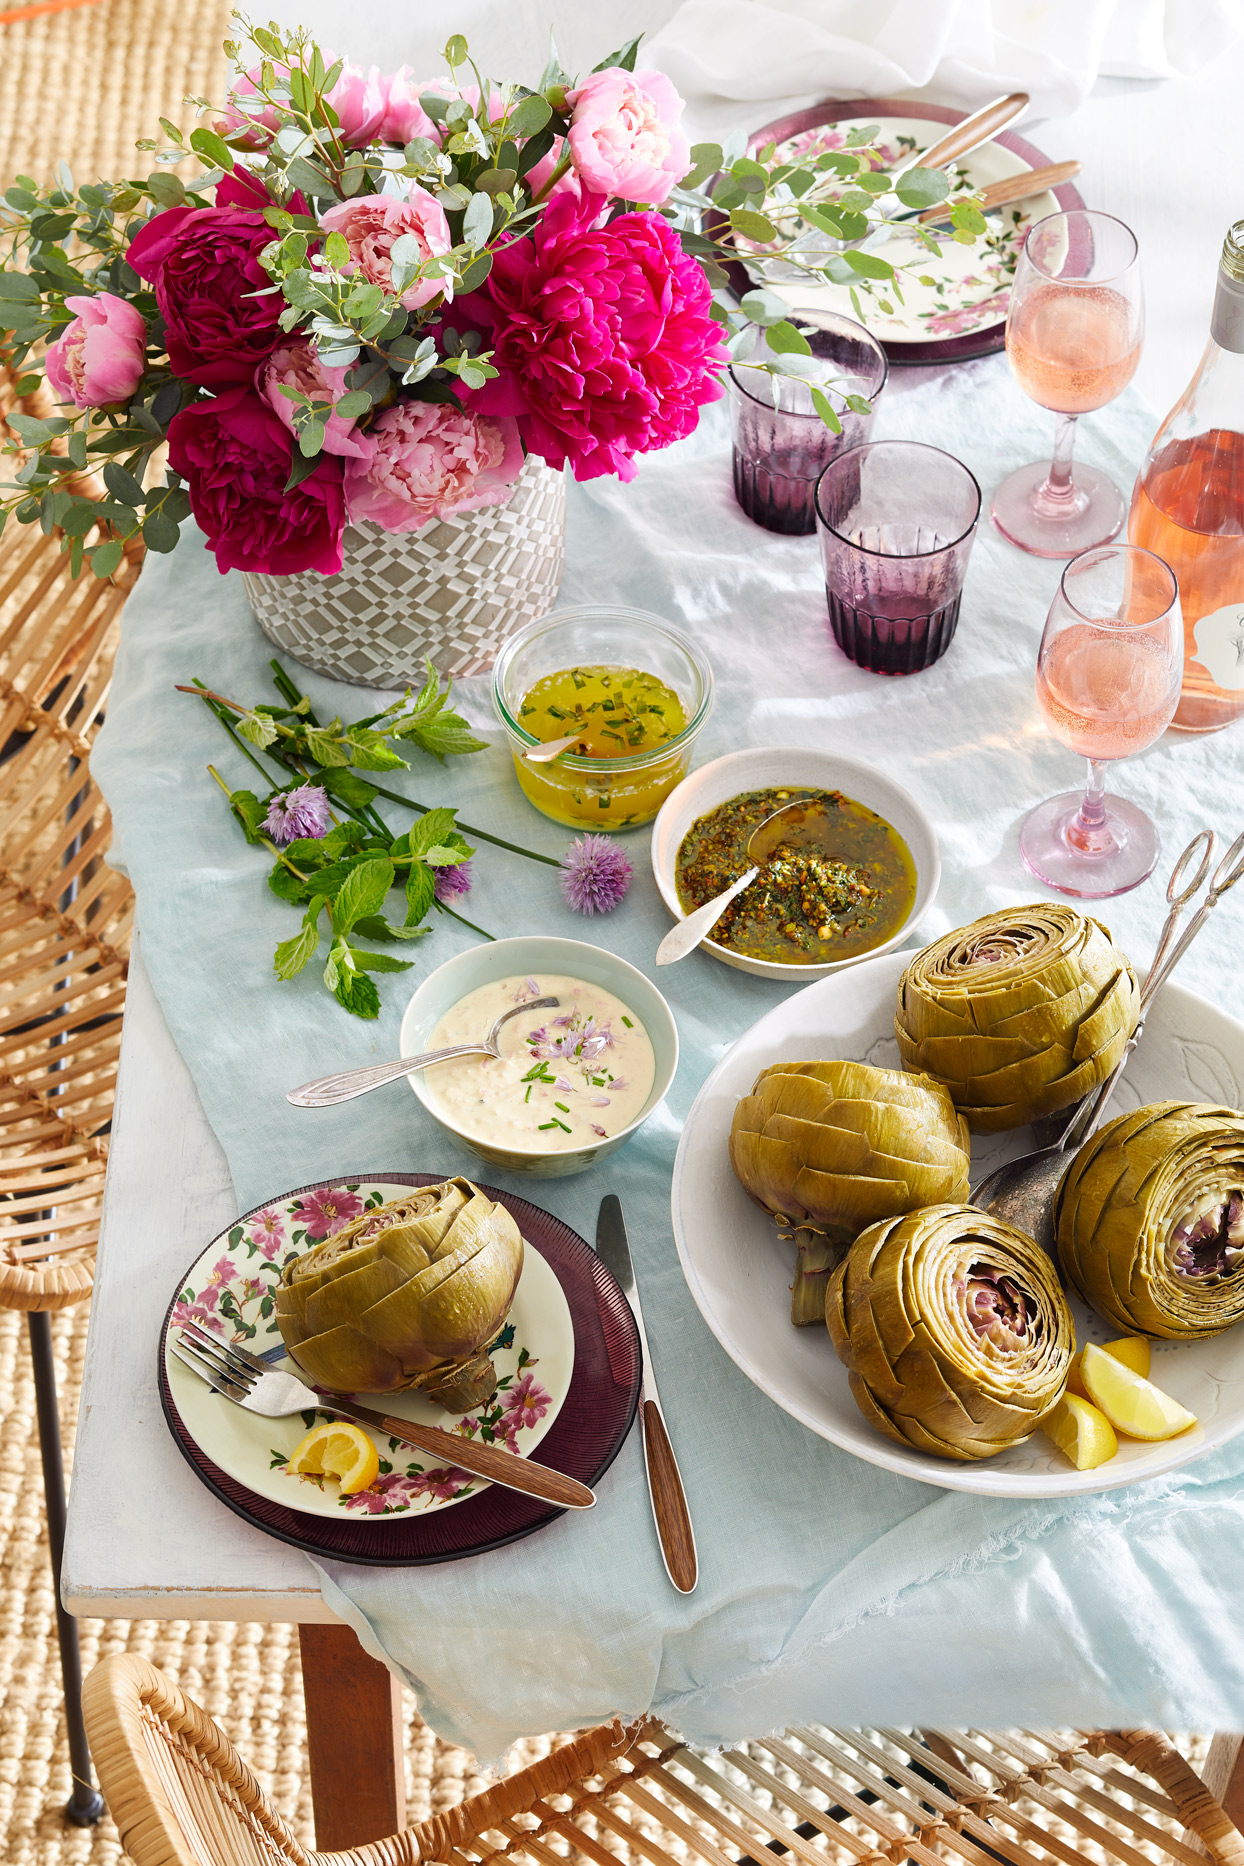 Steamed Artichokes with Dipping Sauces